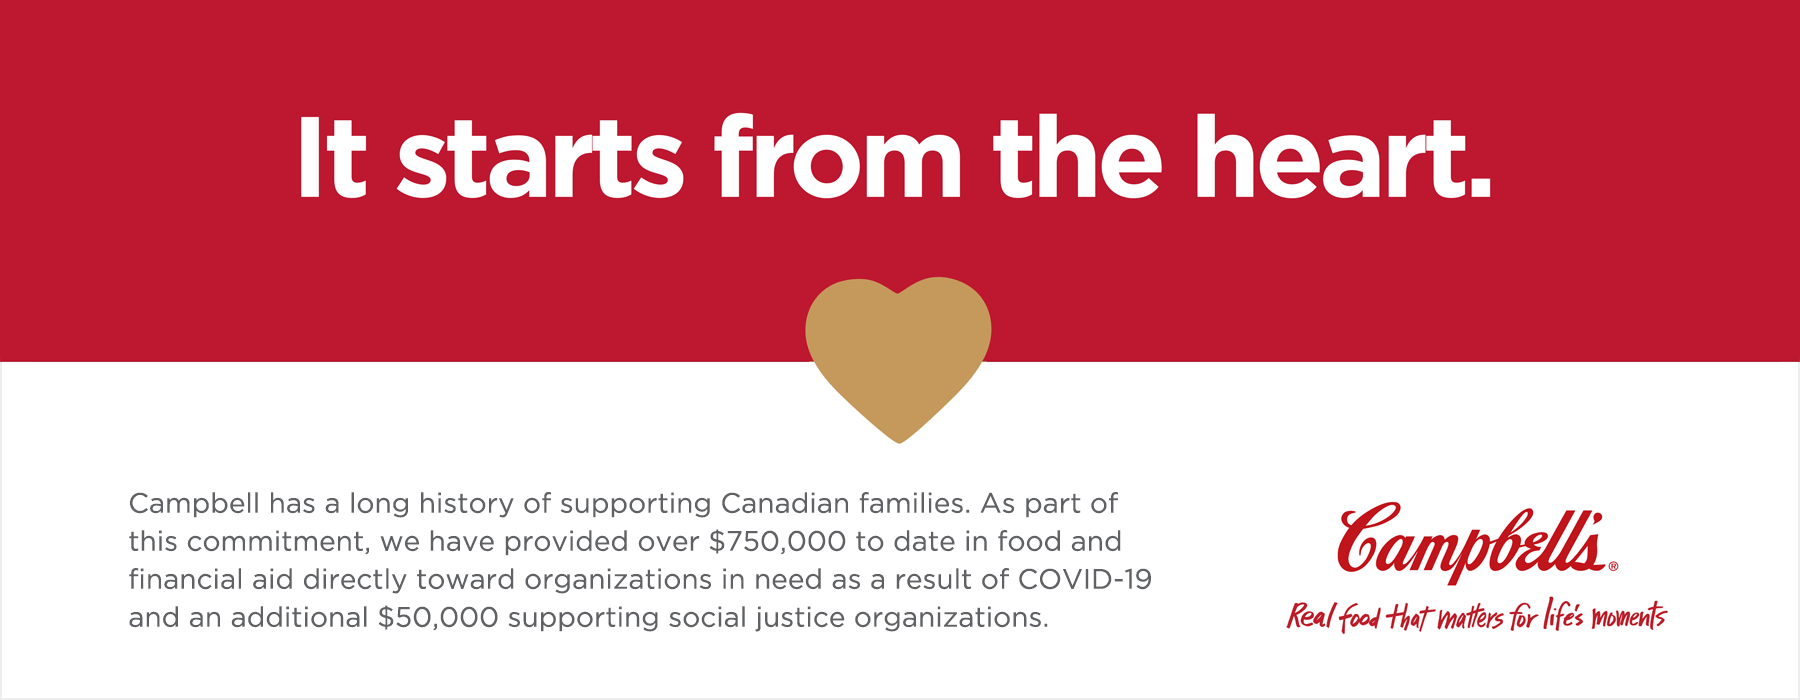 It starts from the heart.  Campbell has a long history of supporting Canadian families. As part of this commitment, we have provided over $750,000 to date in food and financial aid directly towards organizations in need as a result of COVID-19 and an additional $50,000 supporting social justice organizations.